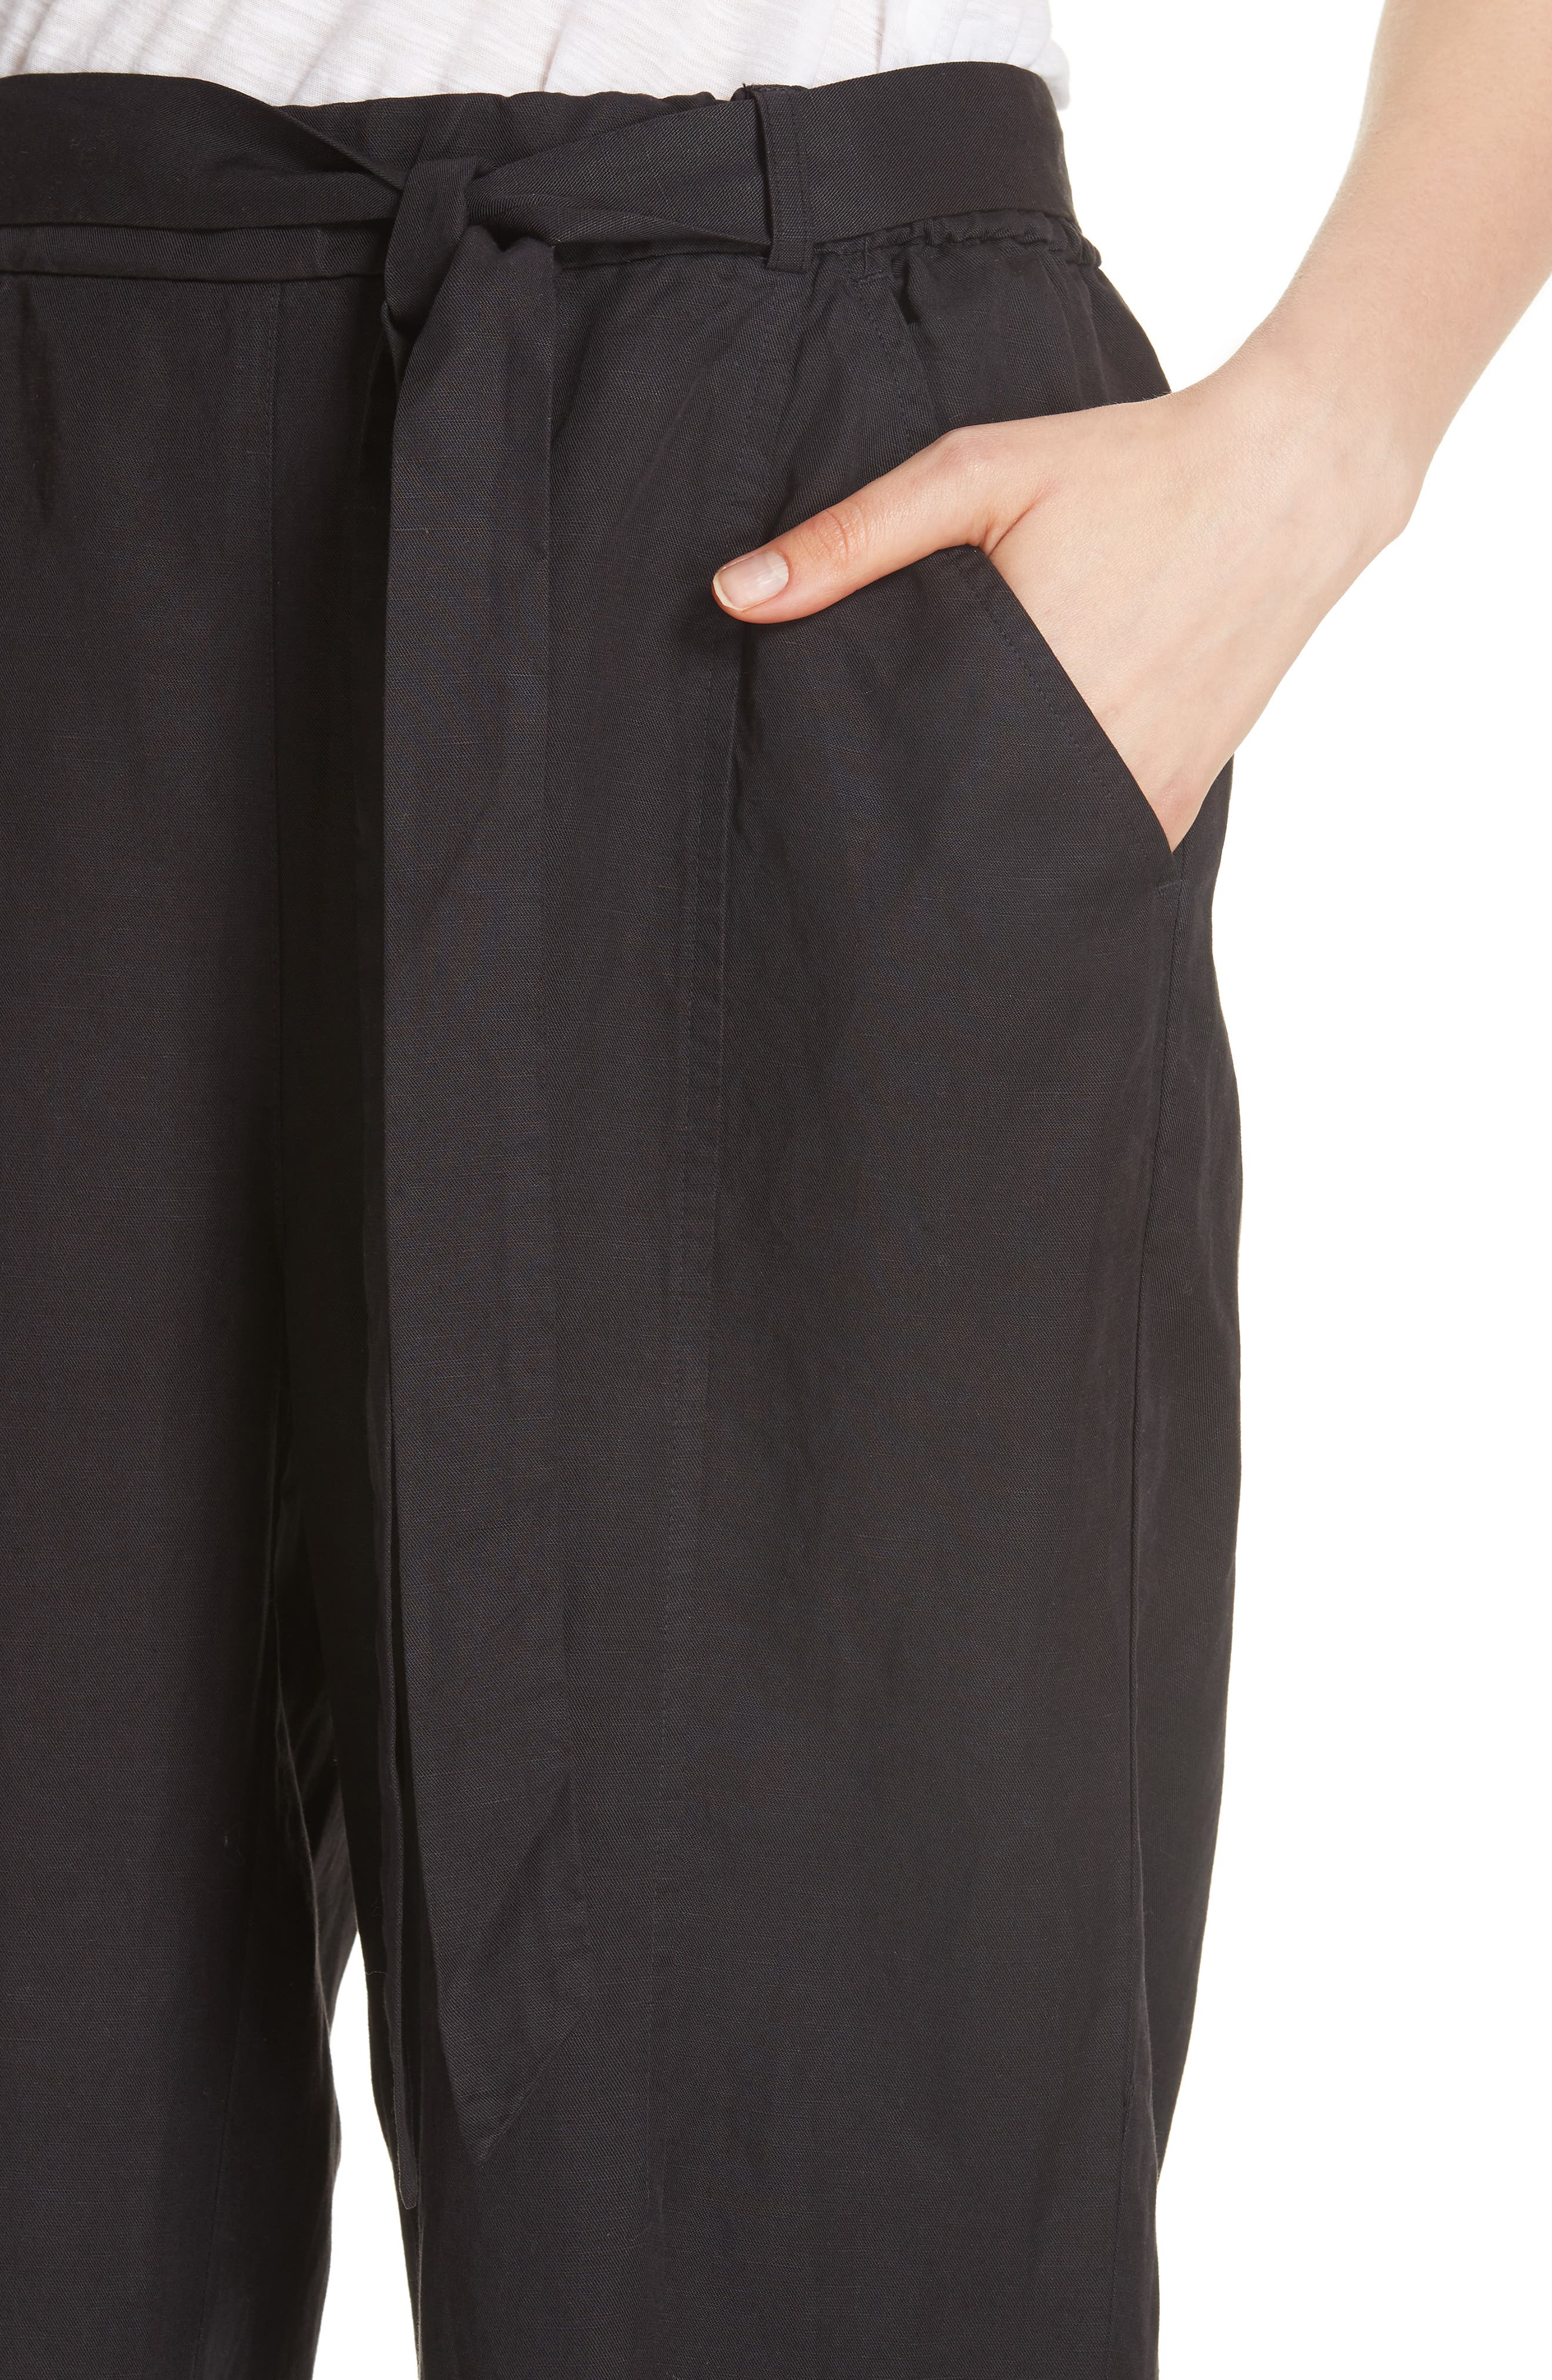 EILEEN FISHER, Lantern Twill Ankle Pants, Alternate thumbnail 5, color, 001